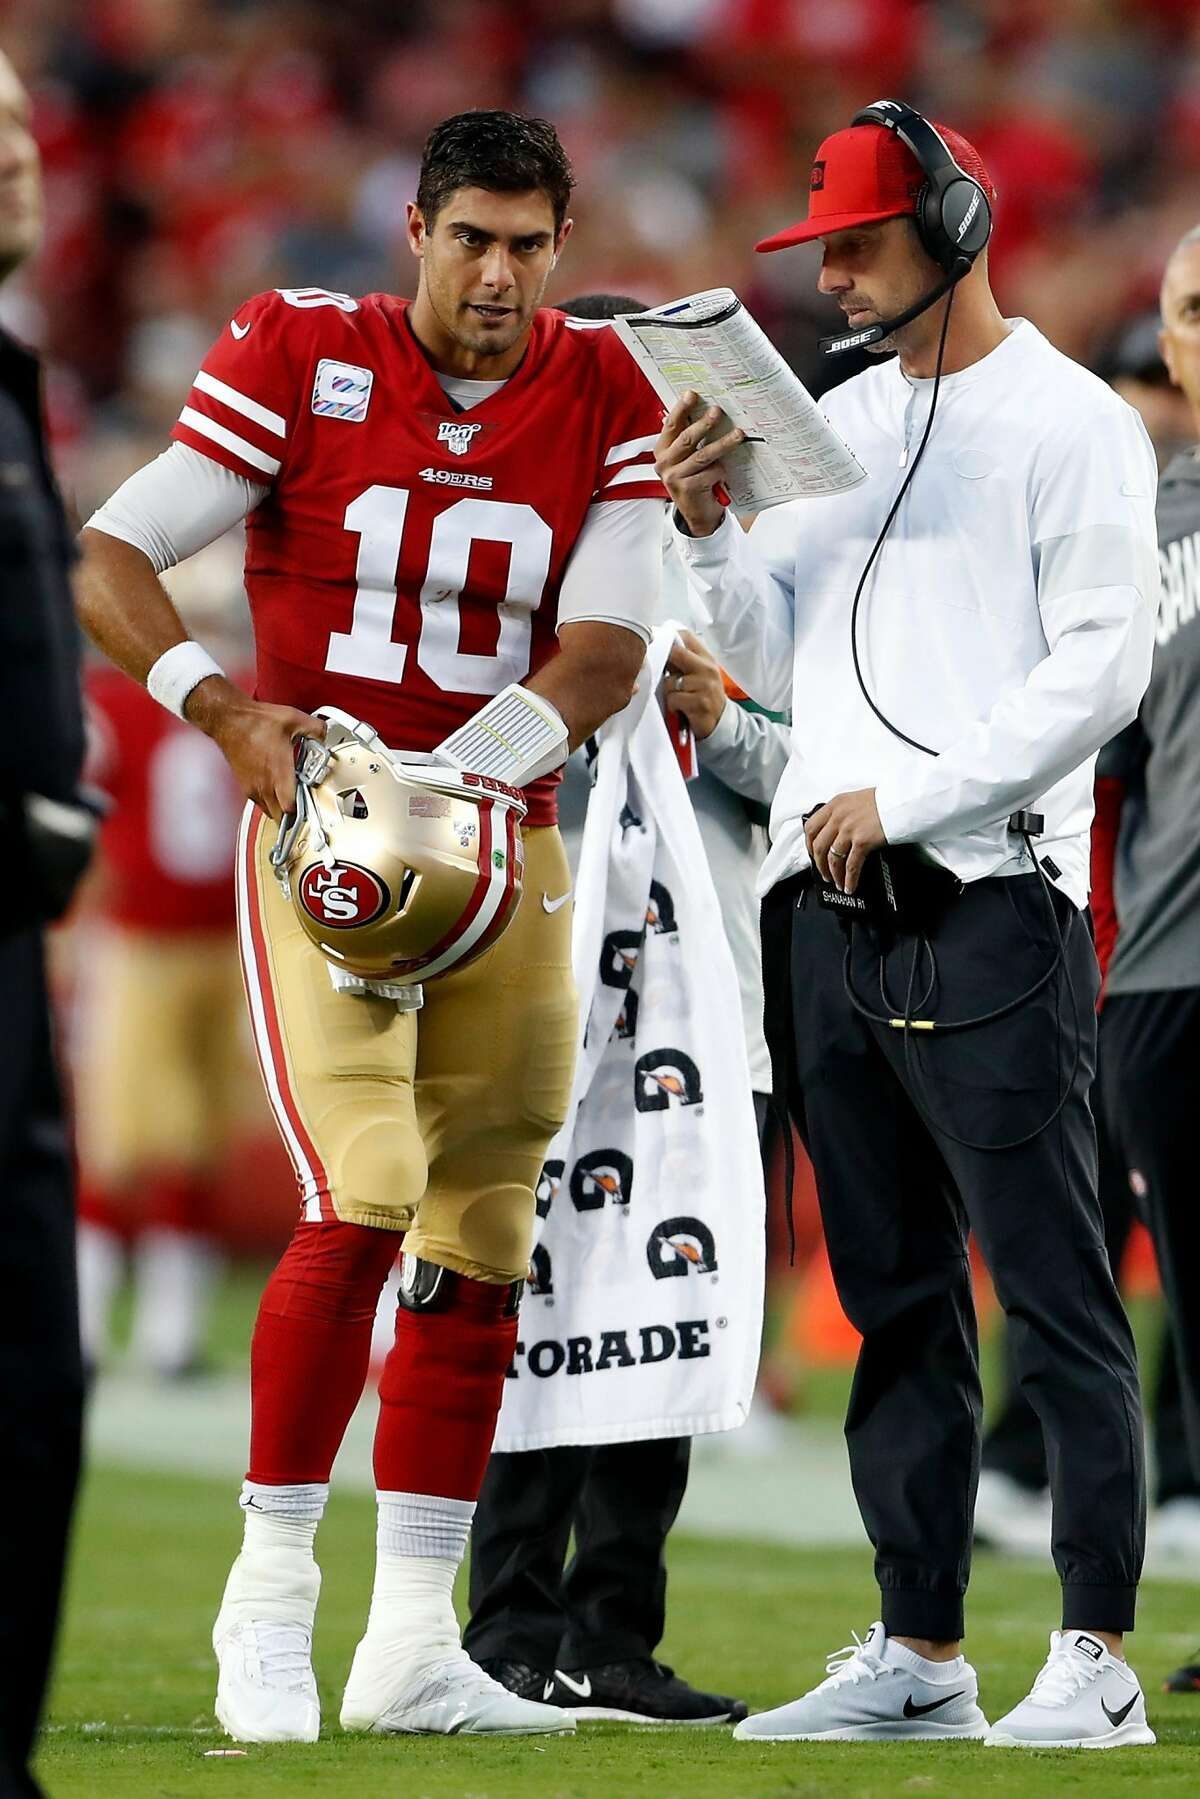 San Francisco 49ers' Jimmy Garoppolo and head coach Kyle Shanahan in 2nd quarter of 31-3 win during NFL game at Levi's Stadium in Santa Clara, Calif., on Monday, October 7, 2019.